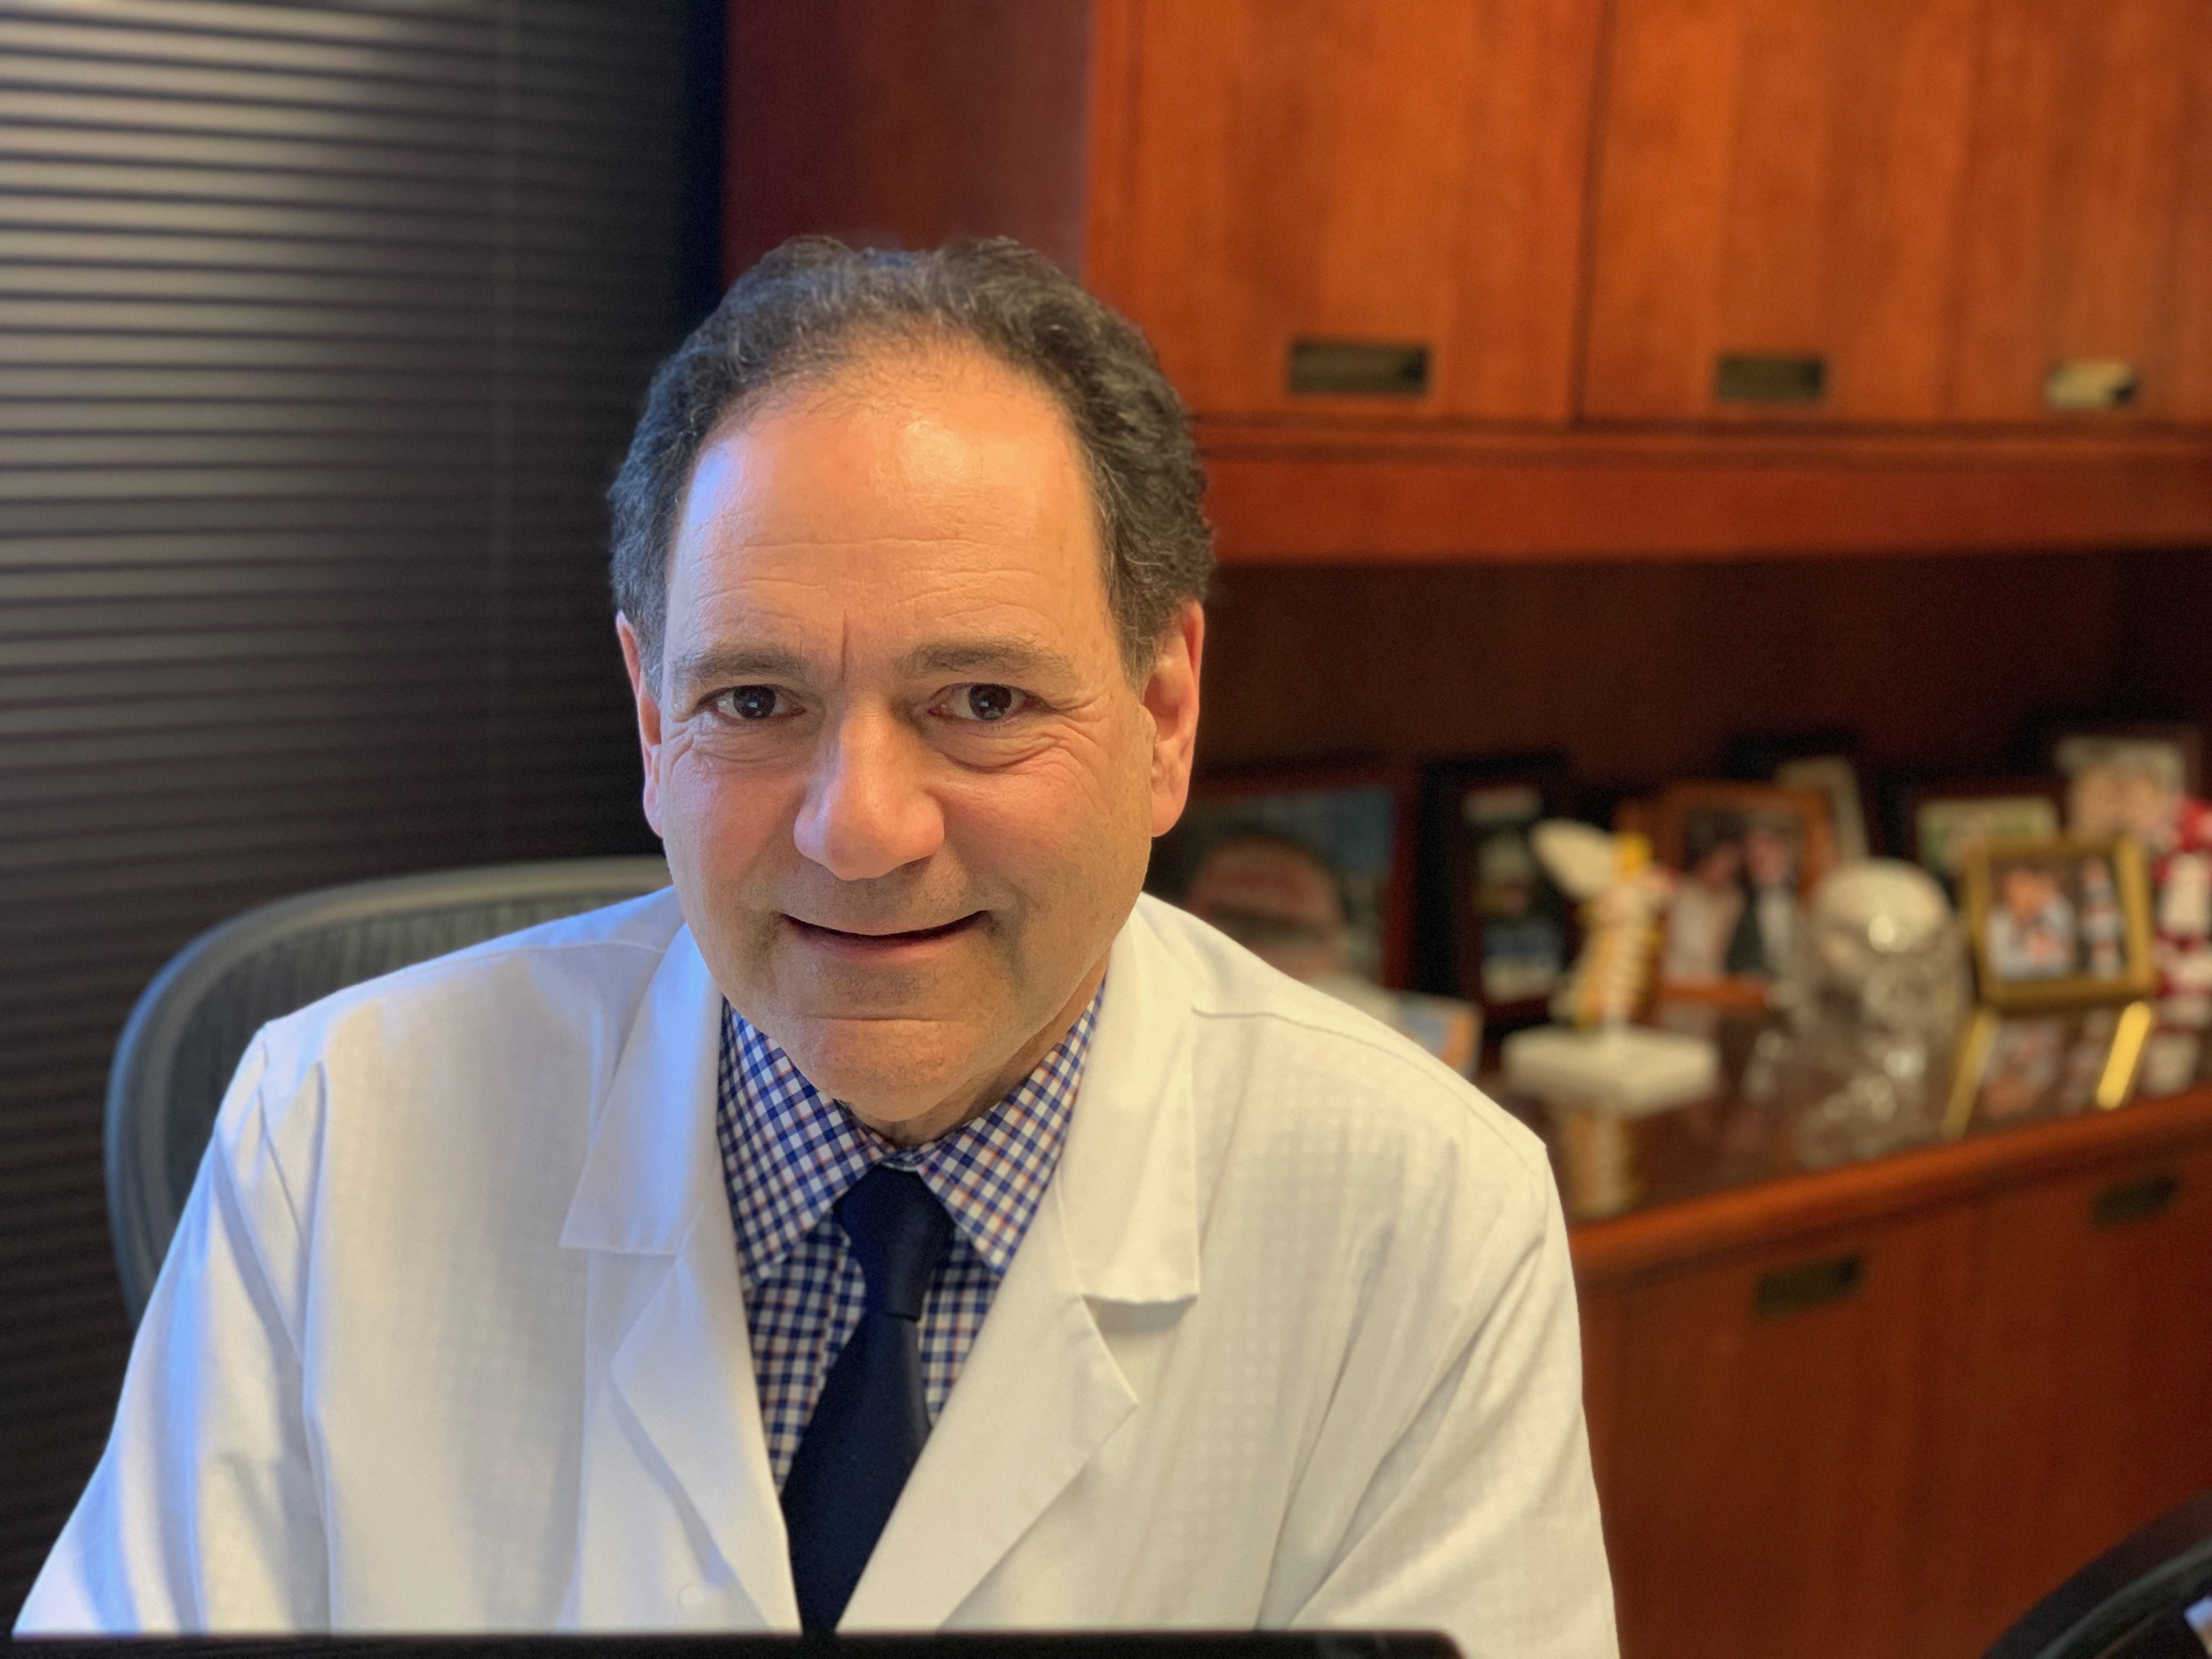 Dr  Gilson | Neurology Specialists of Monmouth County, NJ